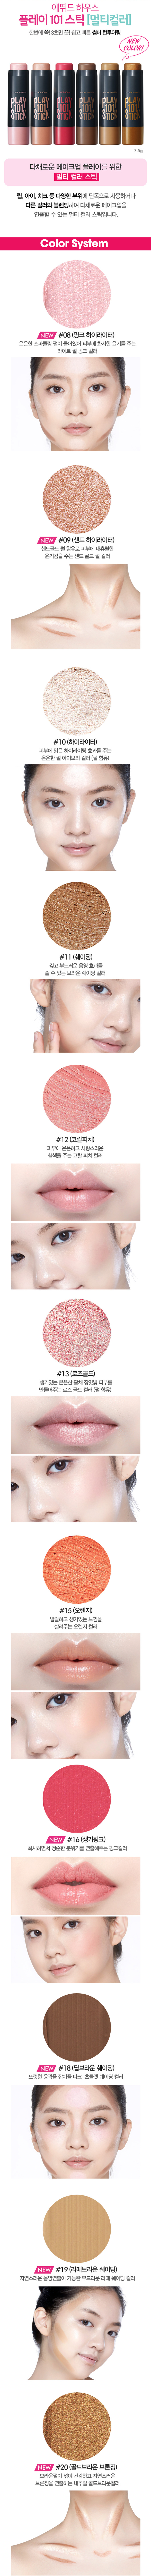 etude-house-2016-new-play-101-stick-multi-color-7.5g-4.jpg